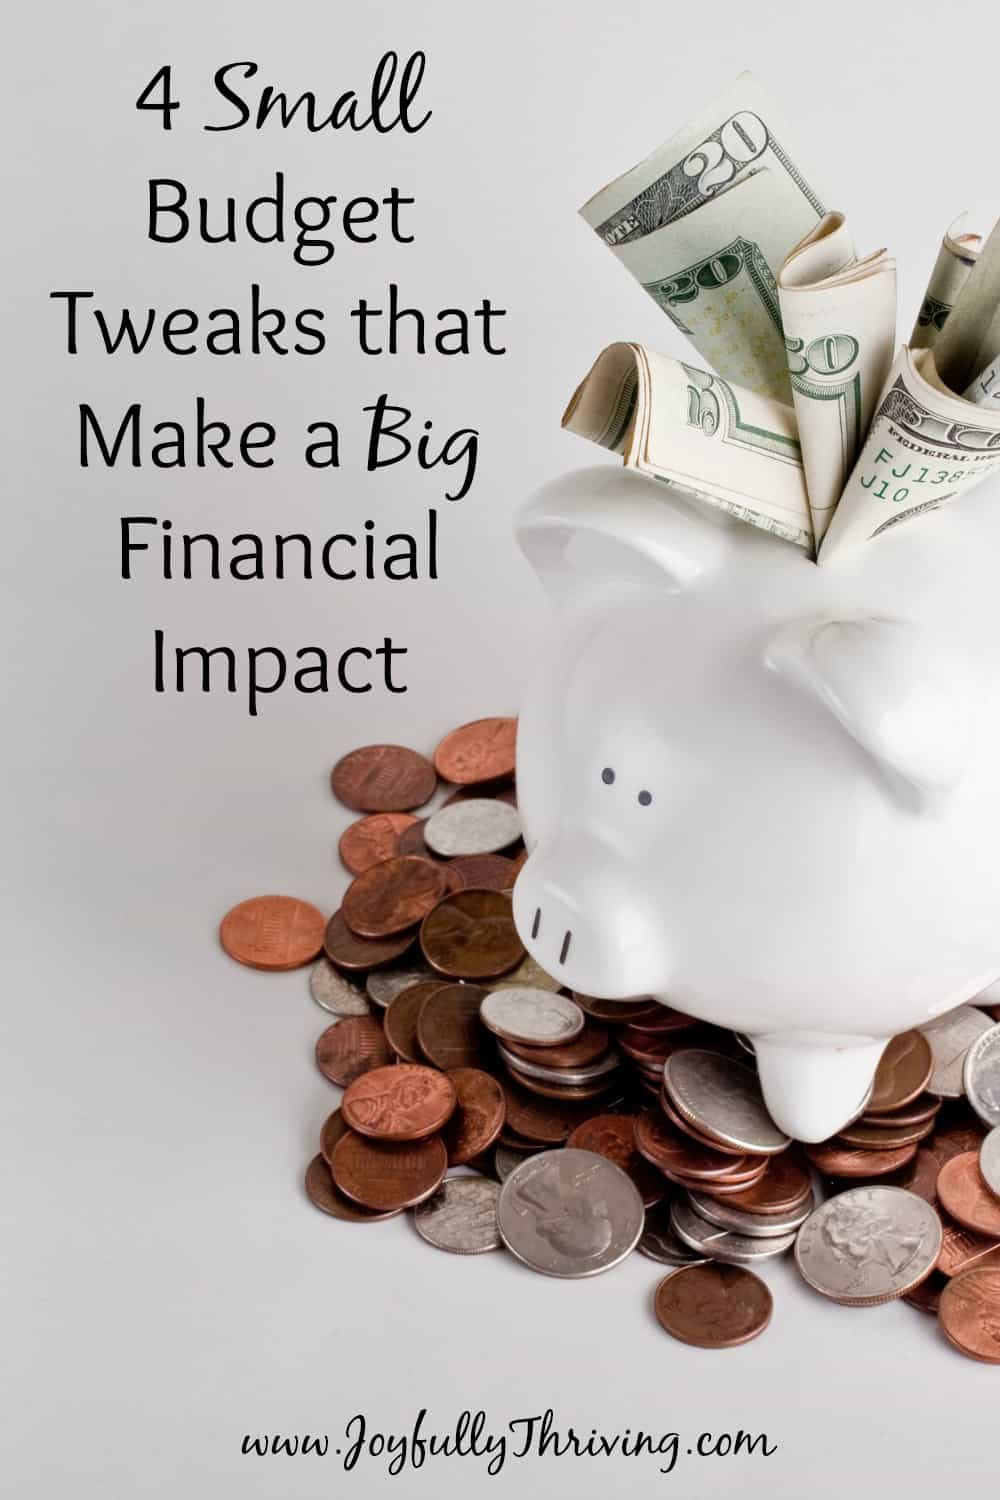 Small Budget Tweaks that Make a Big Financial Impact - Yep. These little changes can save you a lot of money!